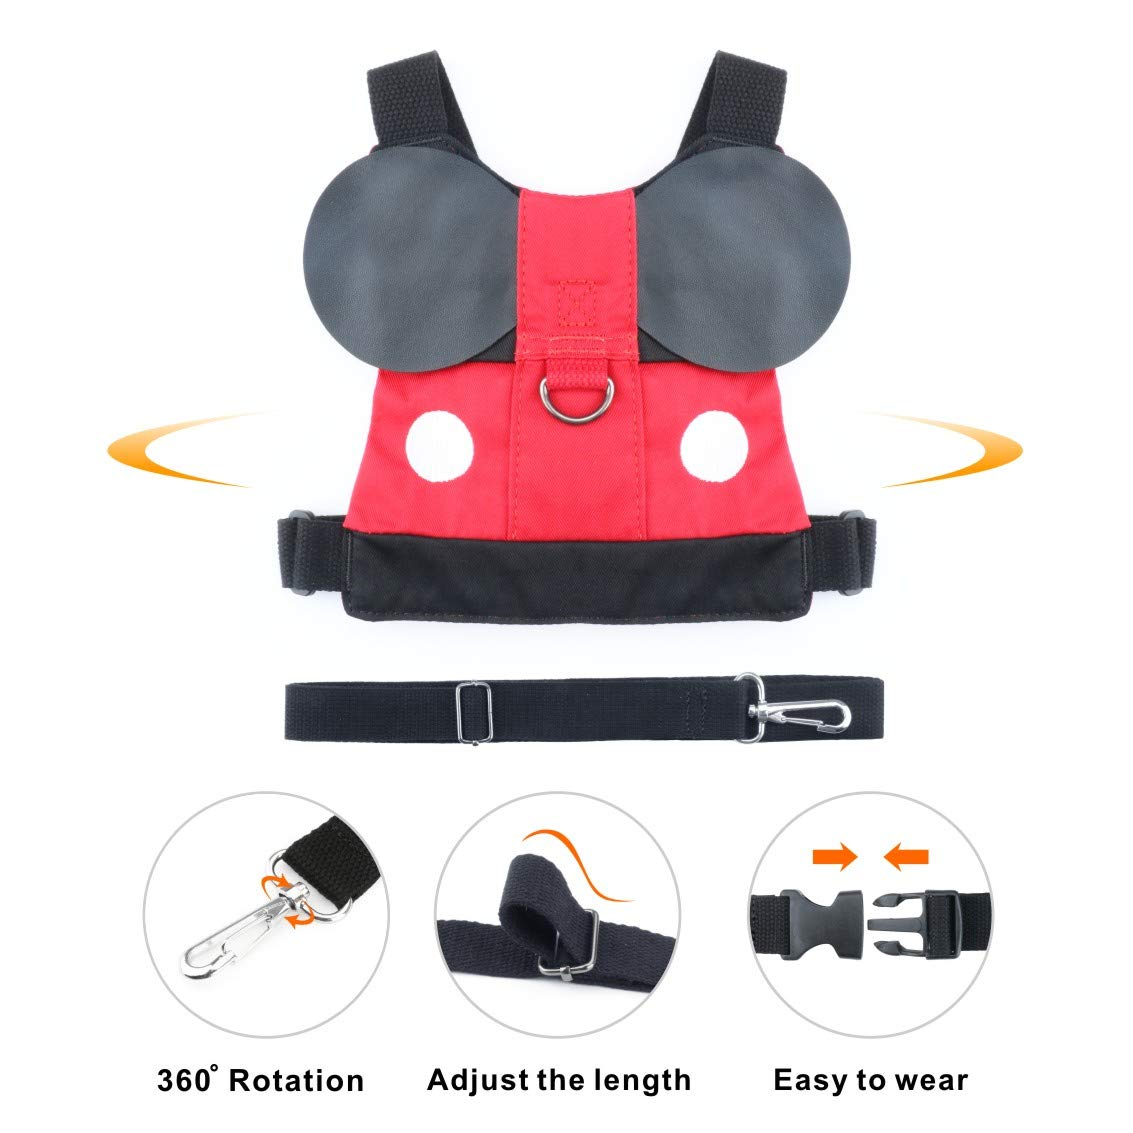 Idefair Kids Harness Kids Walking Leash Safety,Baby Anti Lost Safety Harness,Toddler Harness Safety Leashes for 1-5 Years Old Boys and Girls - Red by Idefair (Image #5)